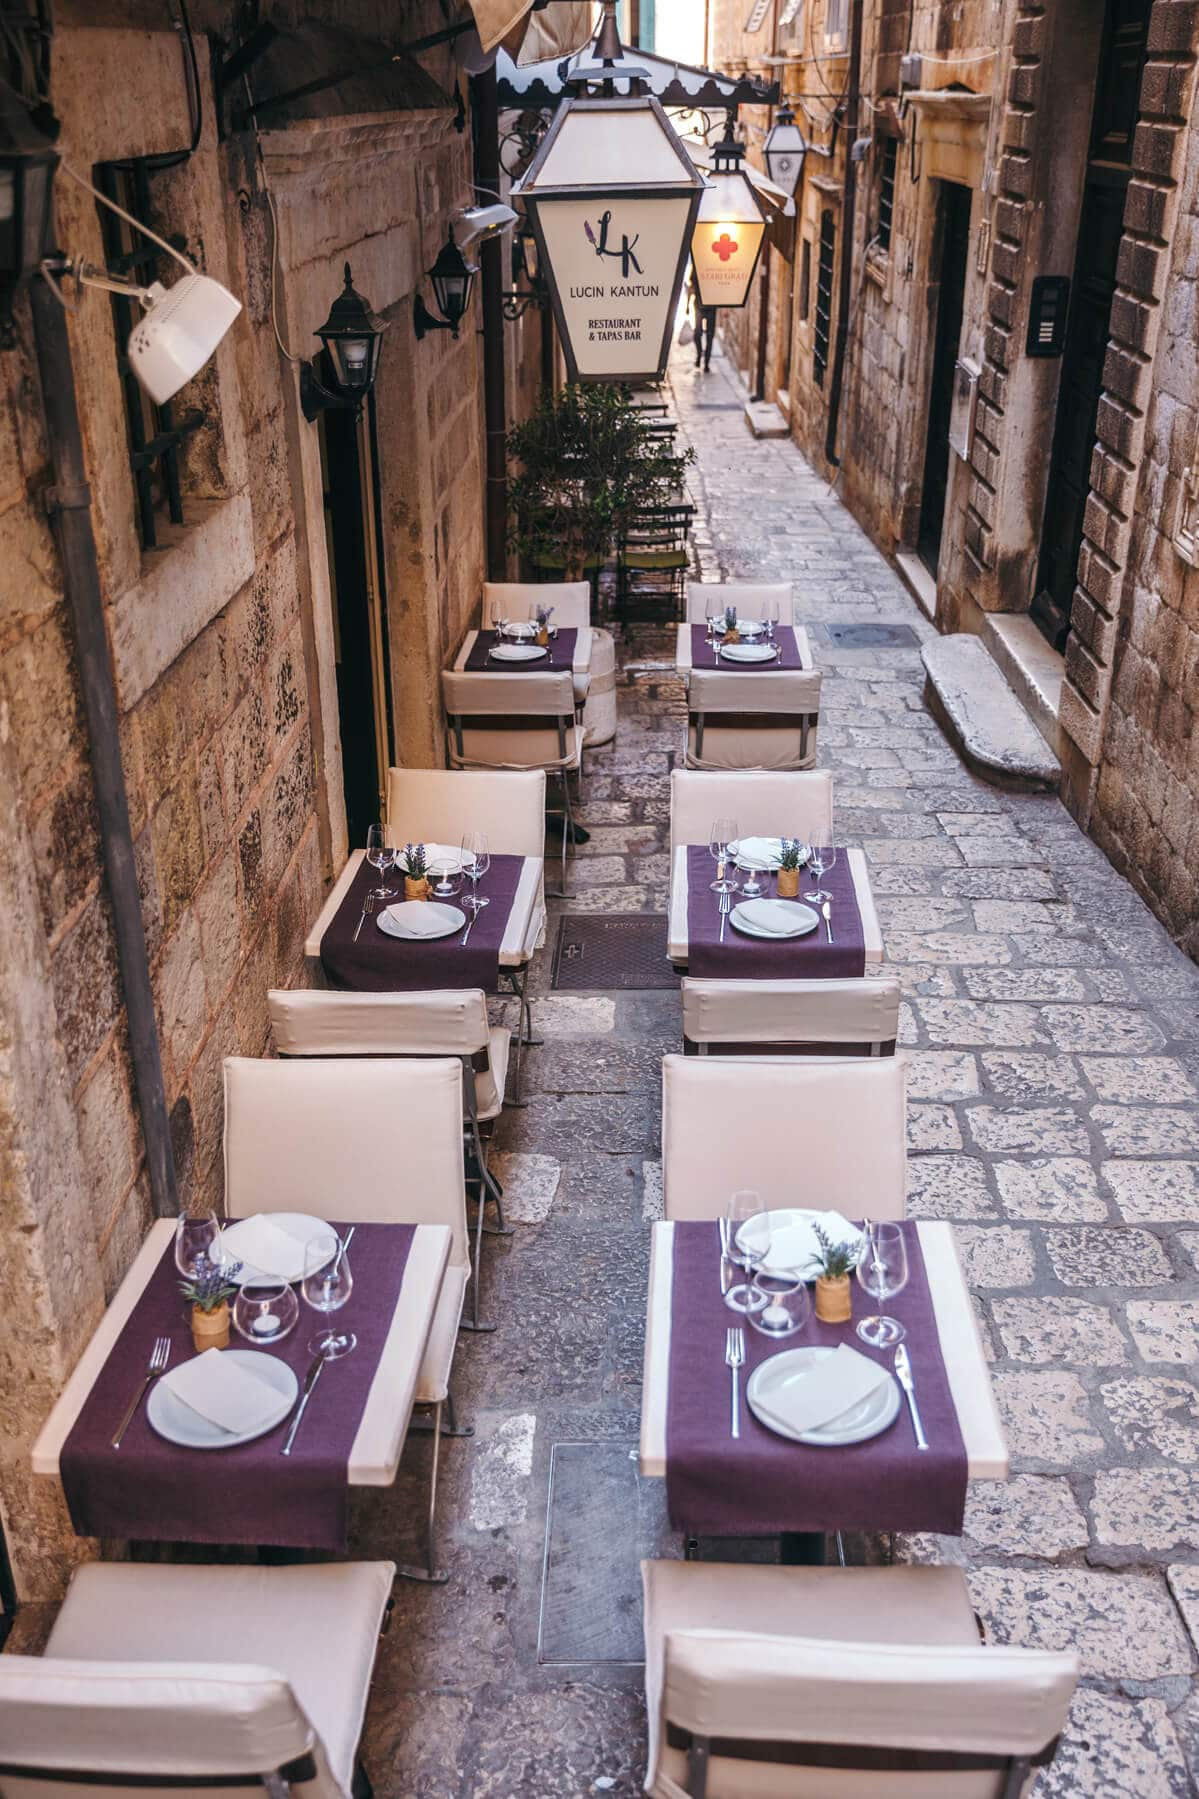 Take a peek into the hidden alley of the Old Town Dubrovnik